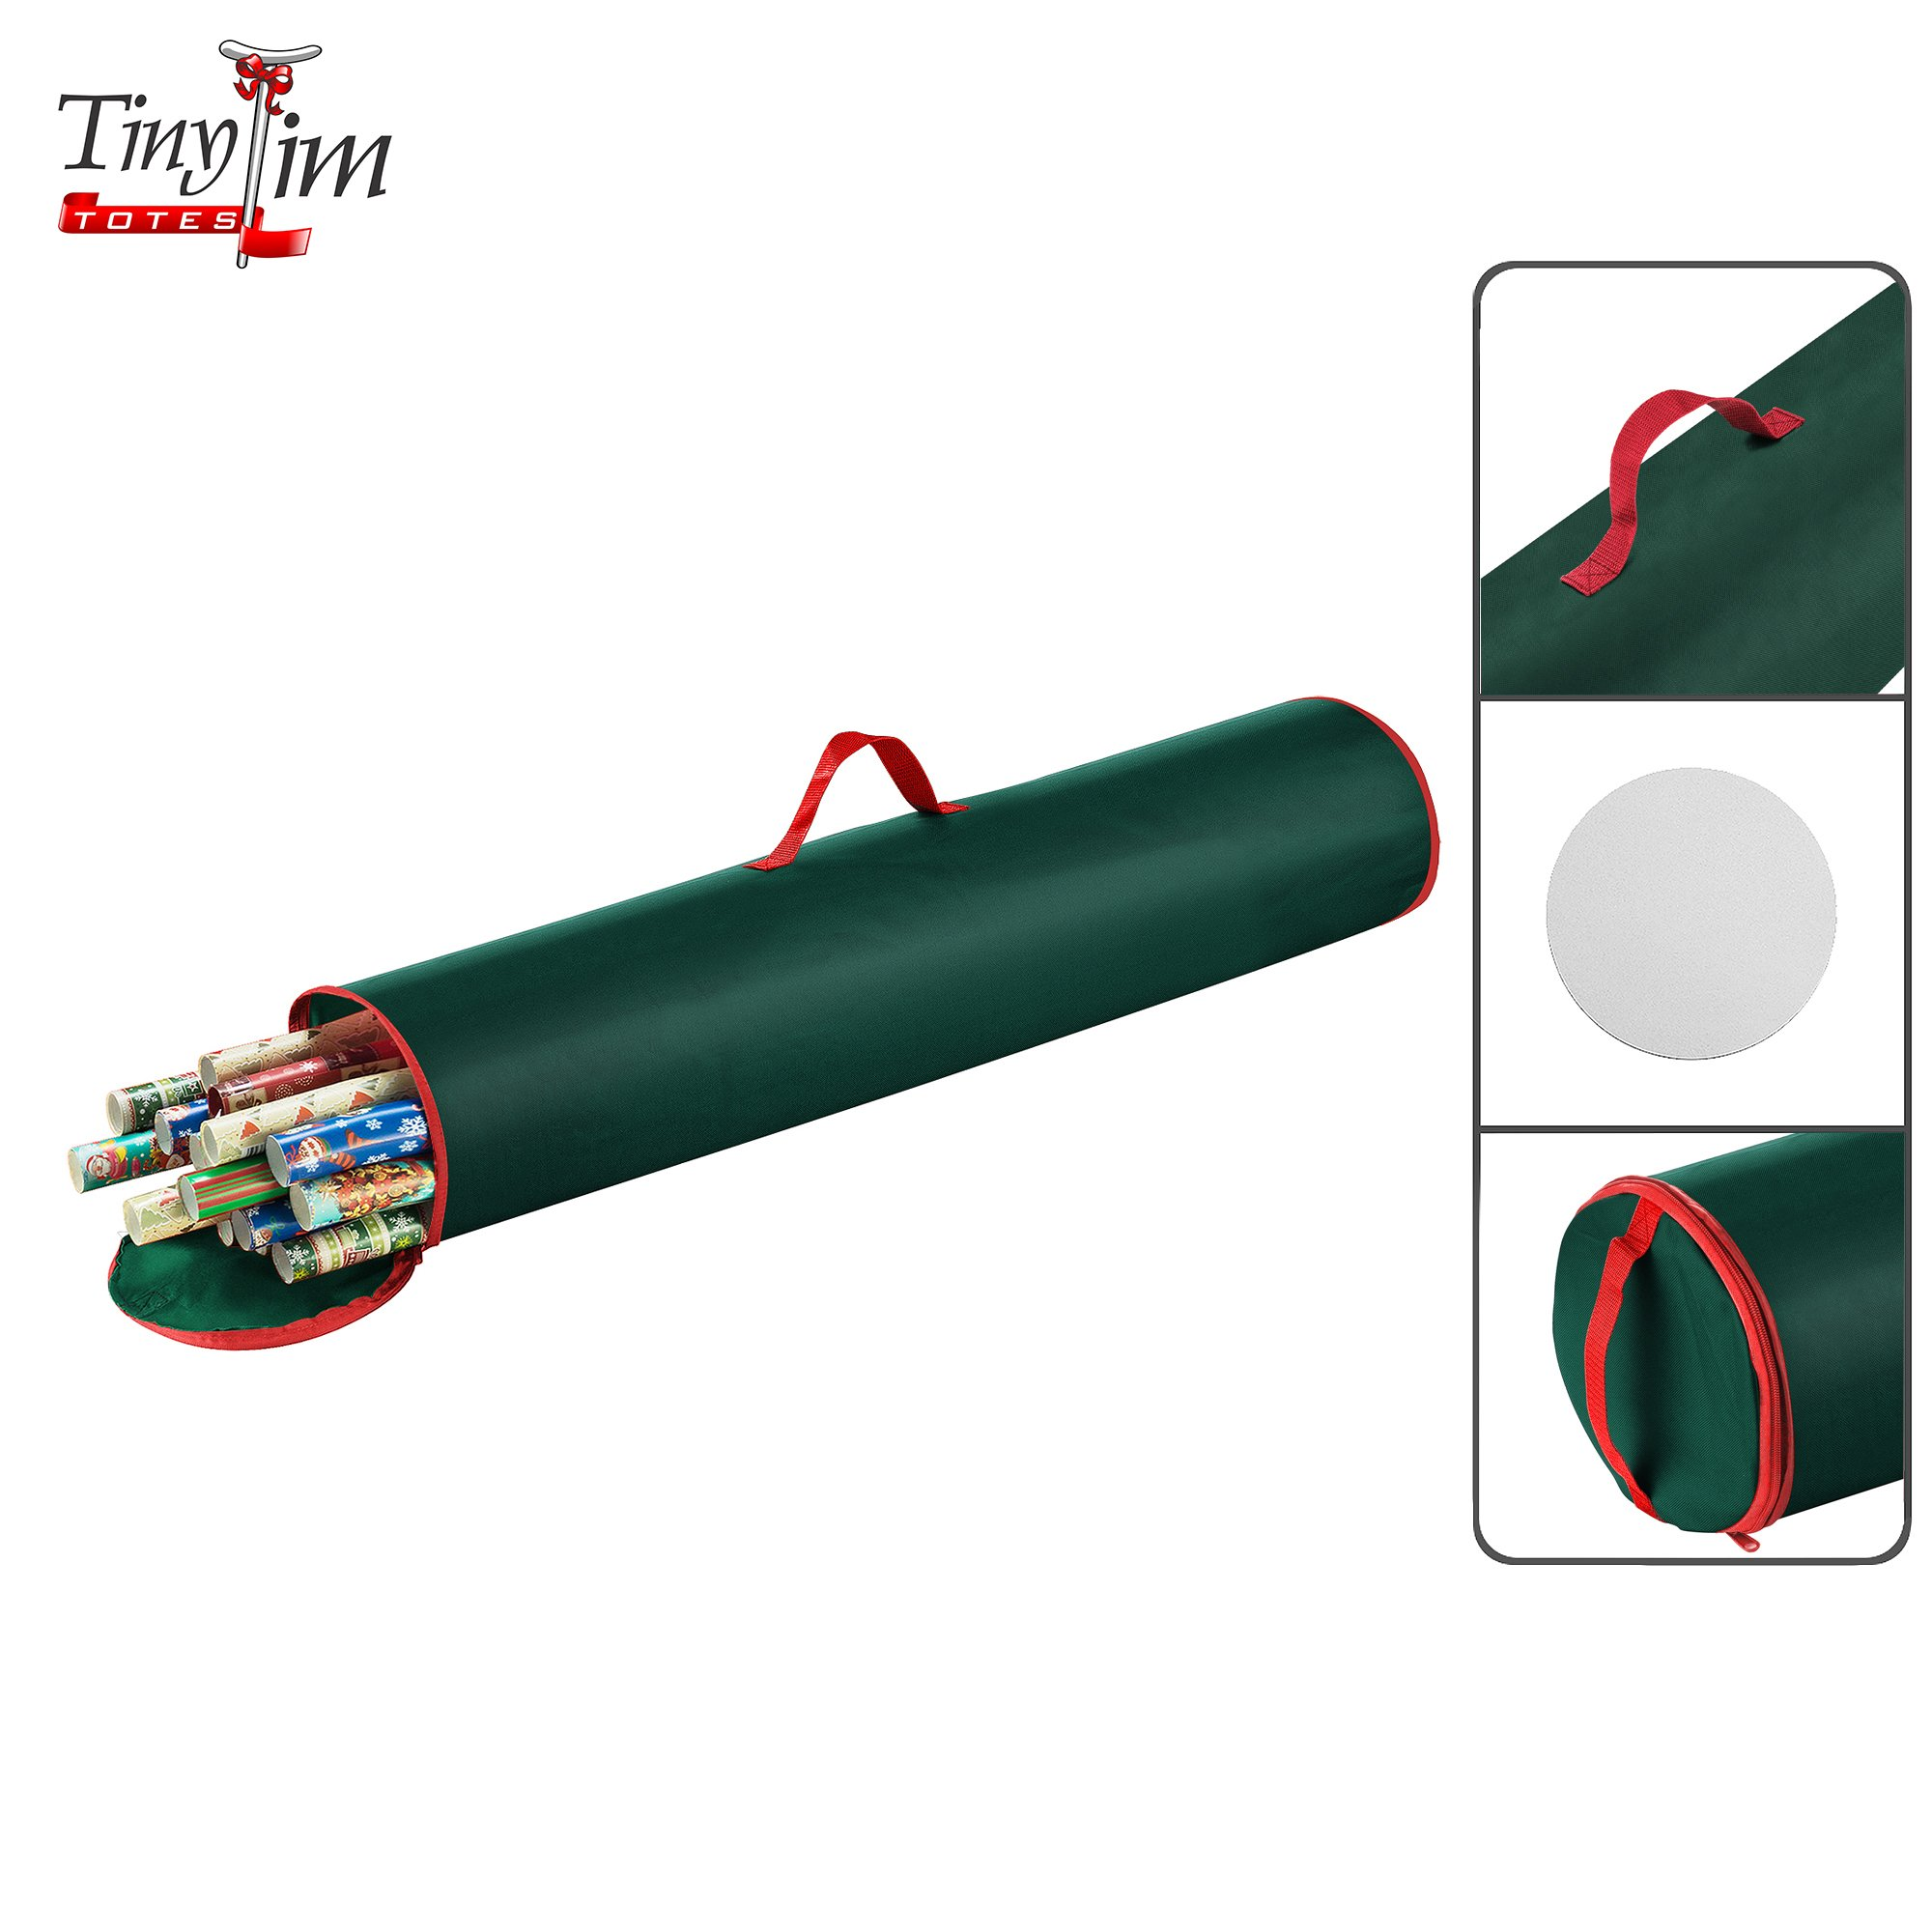 Tiny Tim Totes 5095 Wrapping Canvas Green Paper Storage